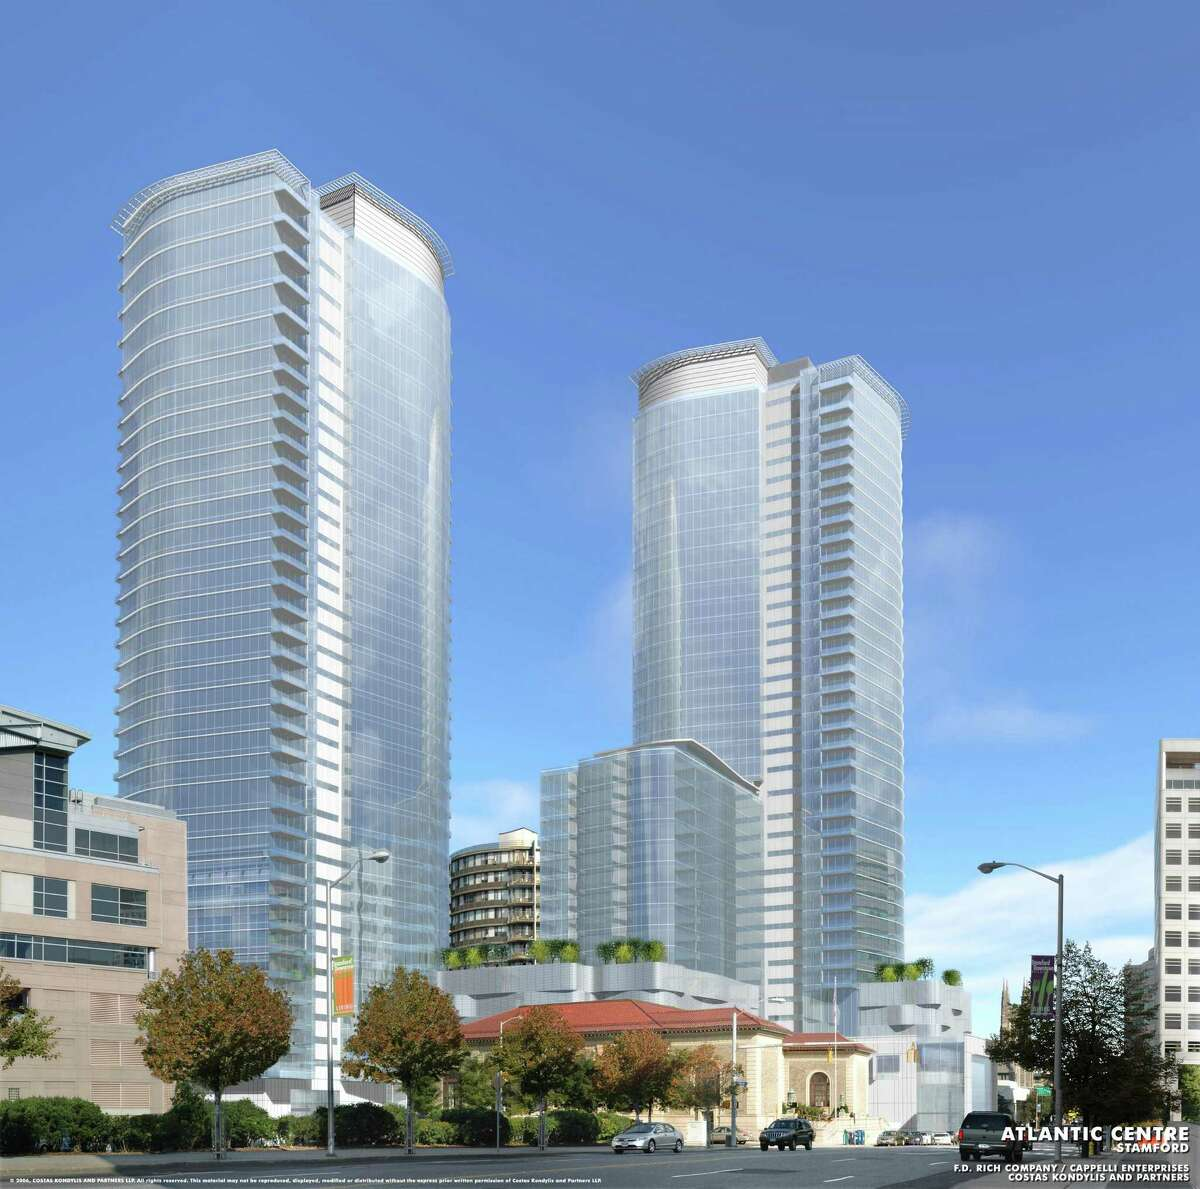 Artist rendering of the proposed Atlantic Centre development at the intersection of Atlantic Street and Tresser Boulevard. Developers Thomast Rich and Louis Cappelli planned on building a Ritz-Carlton with 289 condominiums, 198 hotel rooms, and 68,000 square feet of retail space, but city zoning officials denied their application to extend the permit for the project.